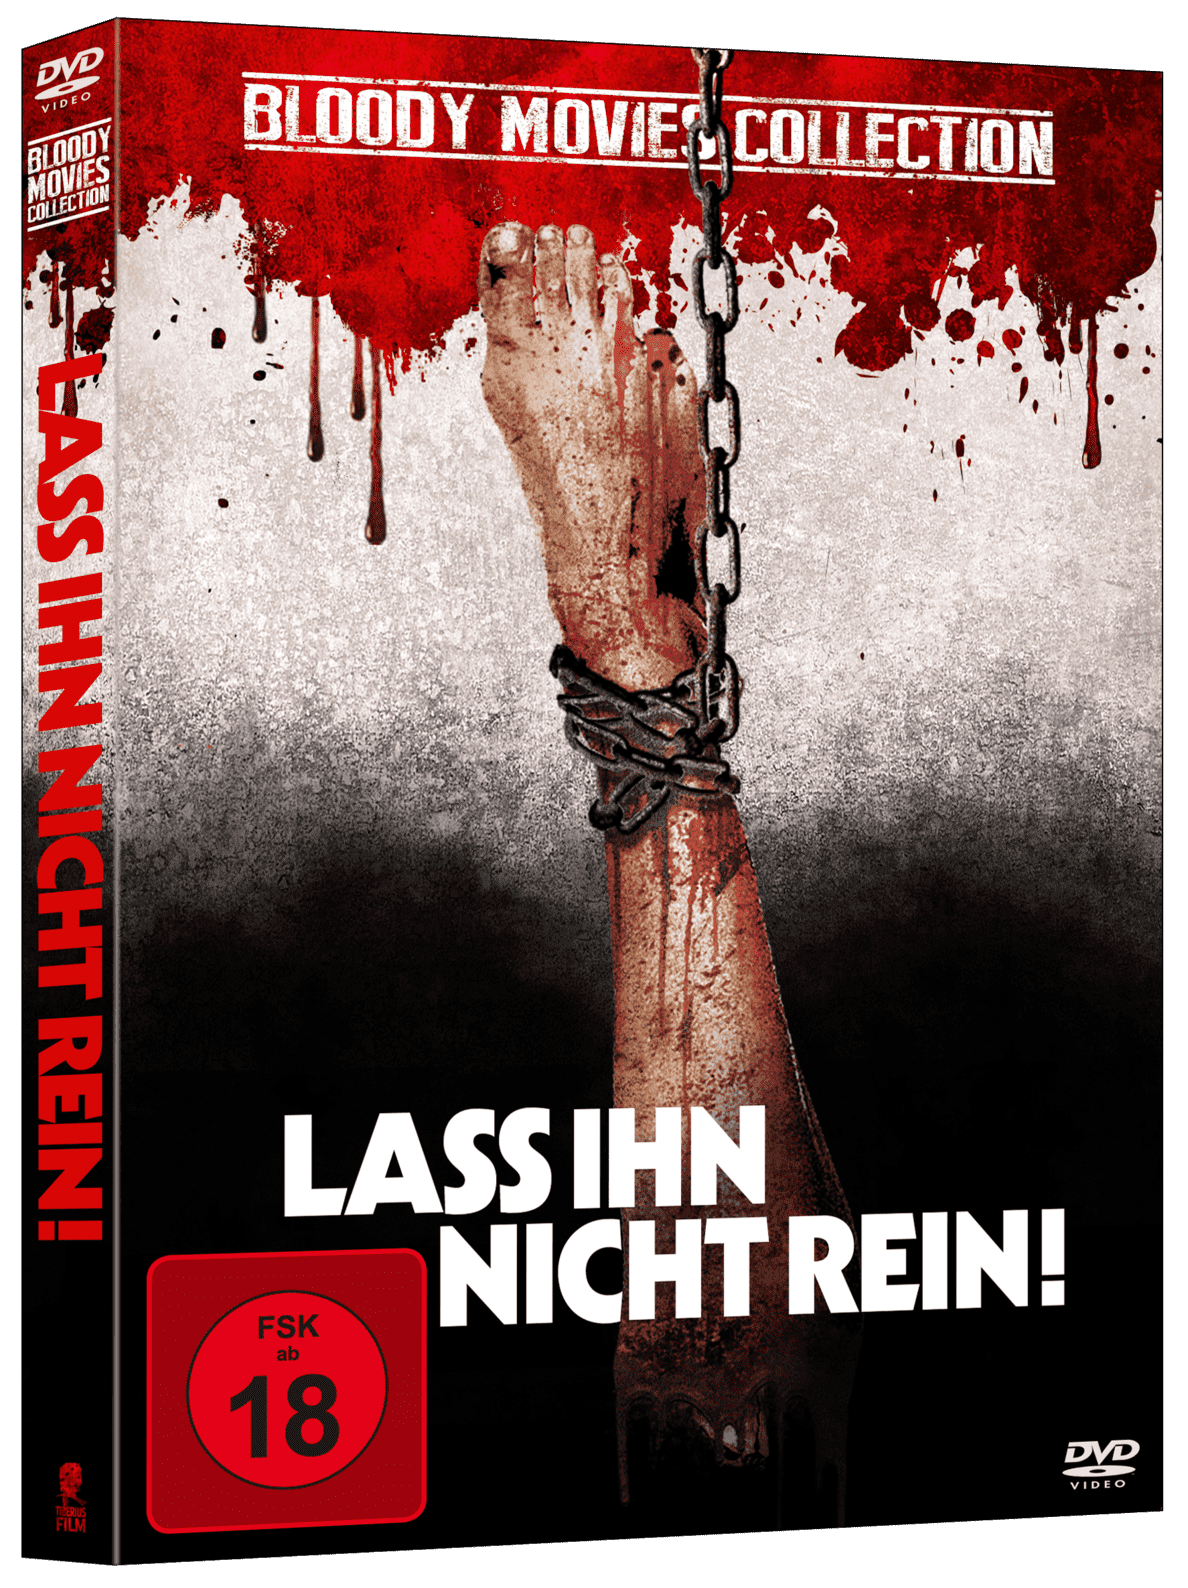 Lass ihn nicht rein! (Bloody Movies Collection) auf DVD